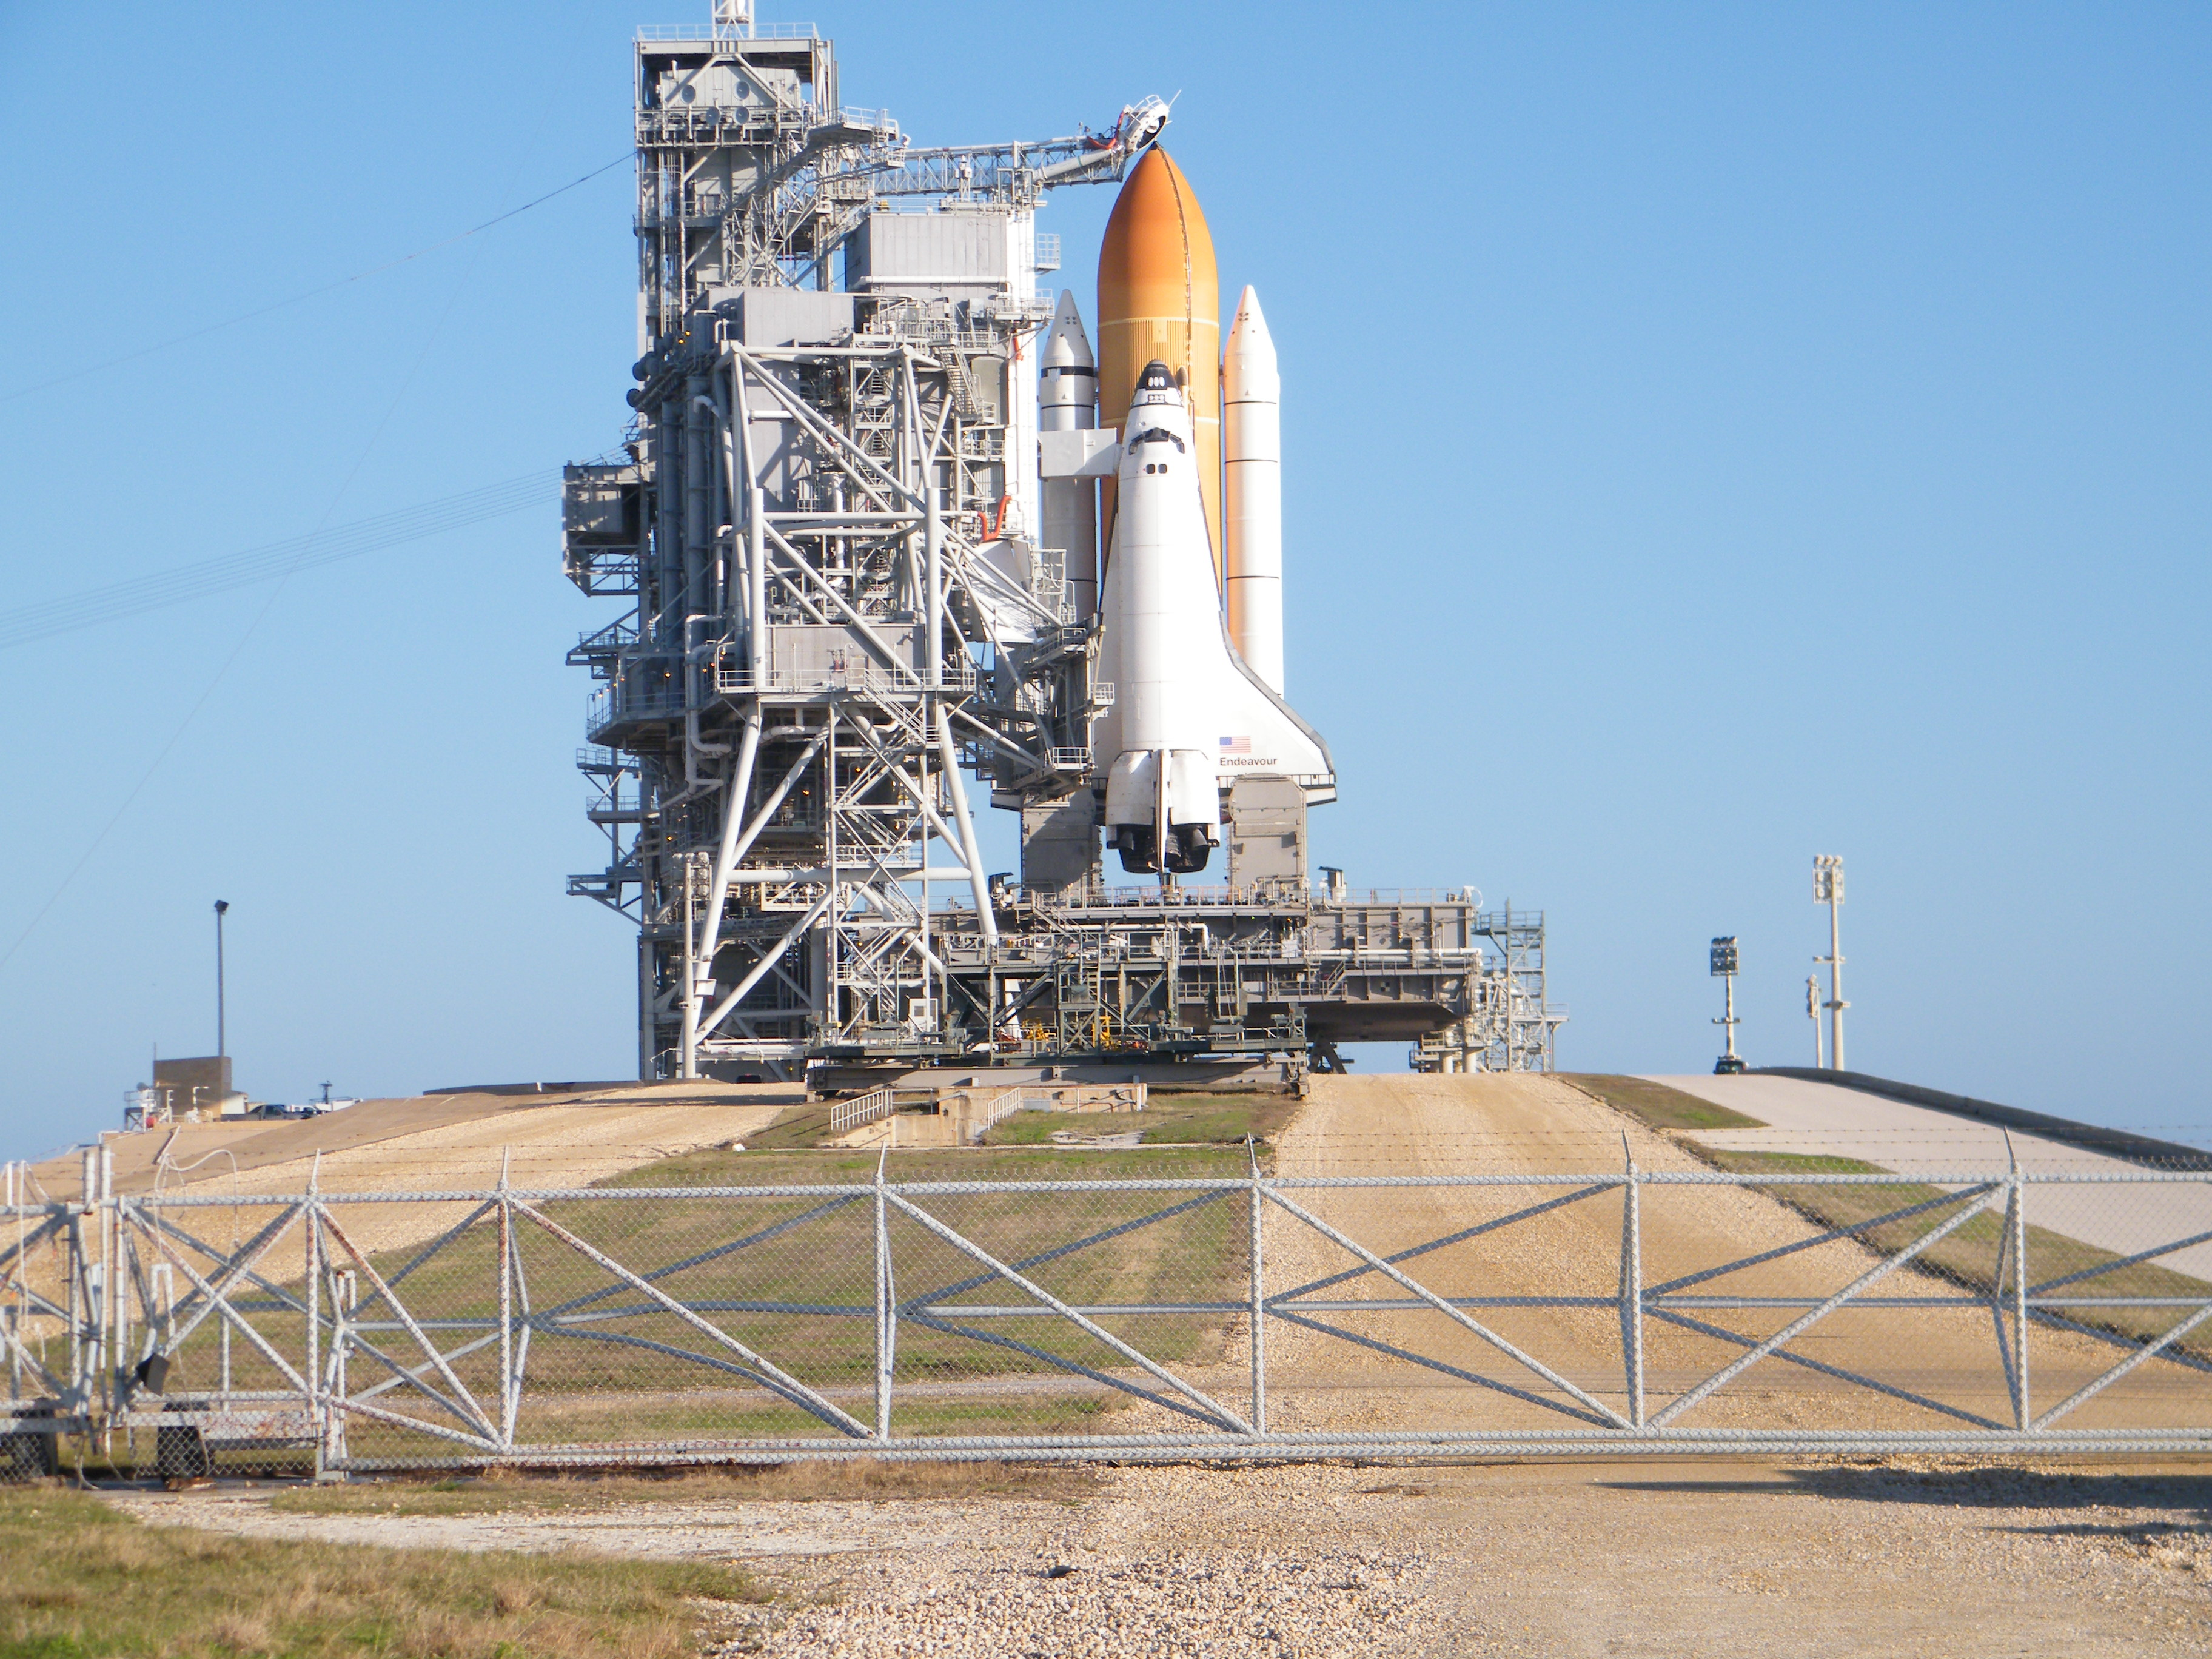 For Sale or Rent: Used Launchpad, Well-Loved - Universe Today